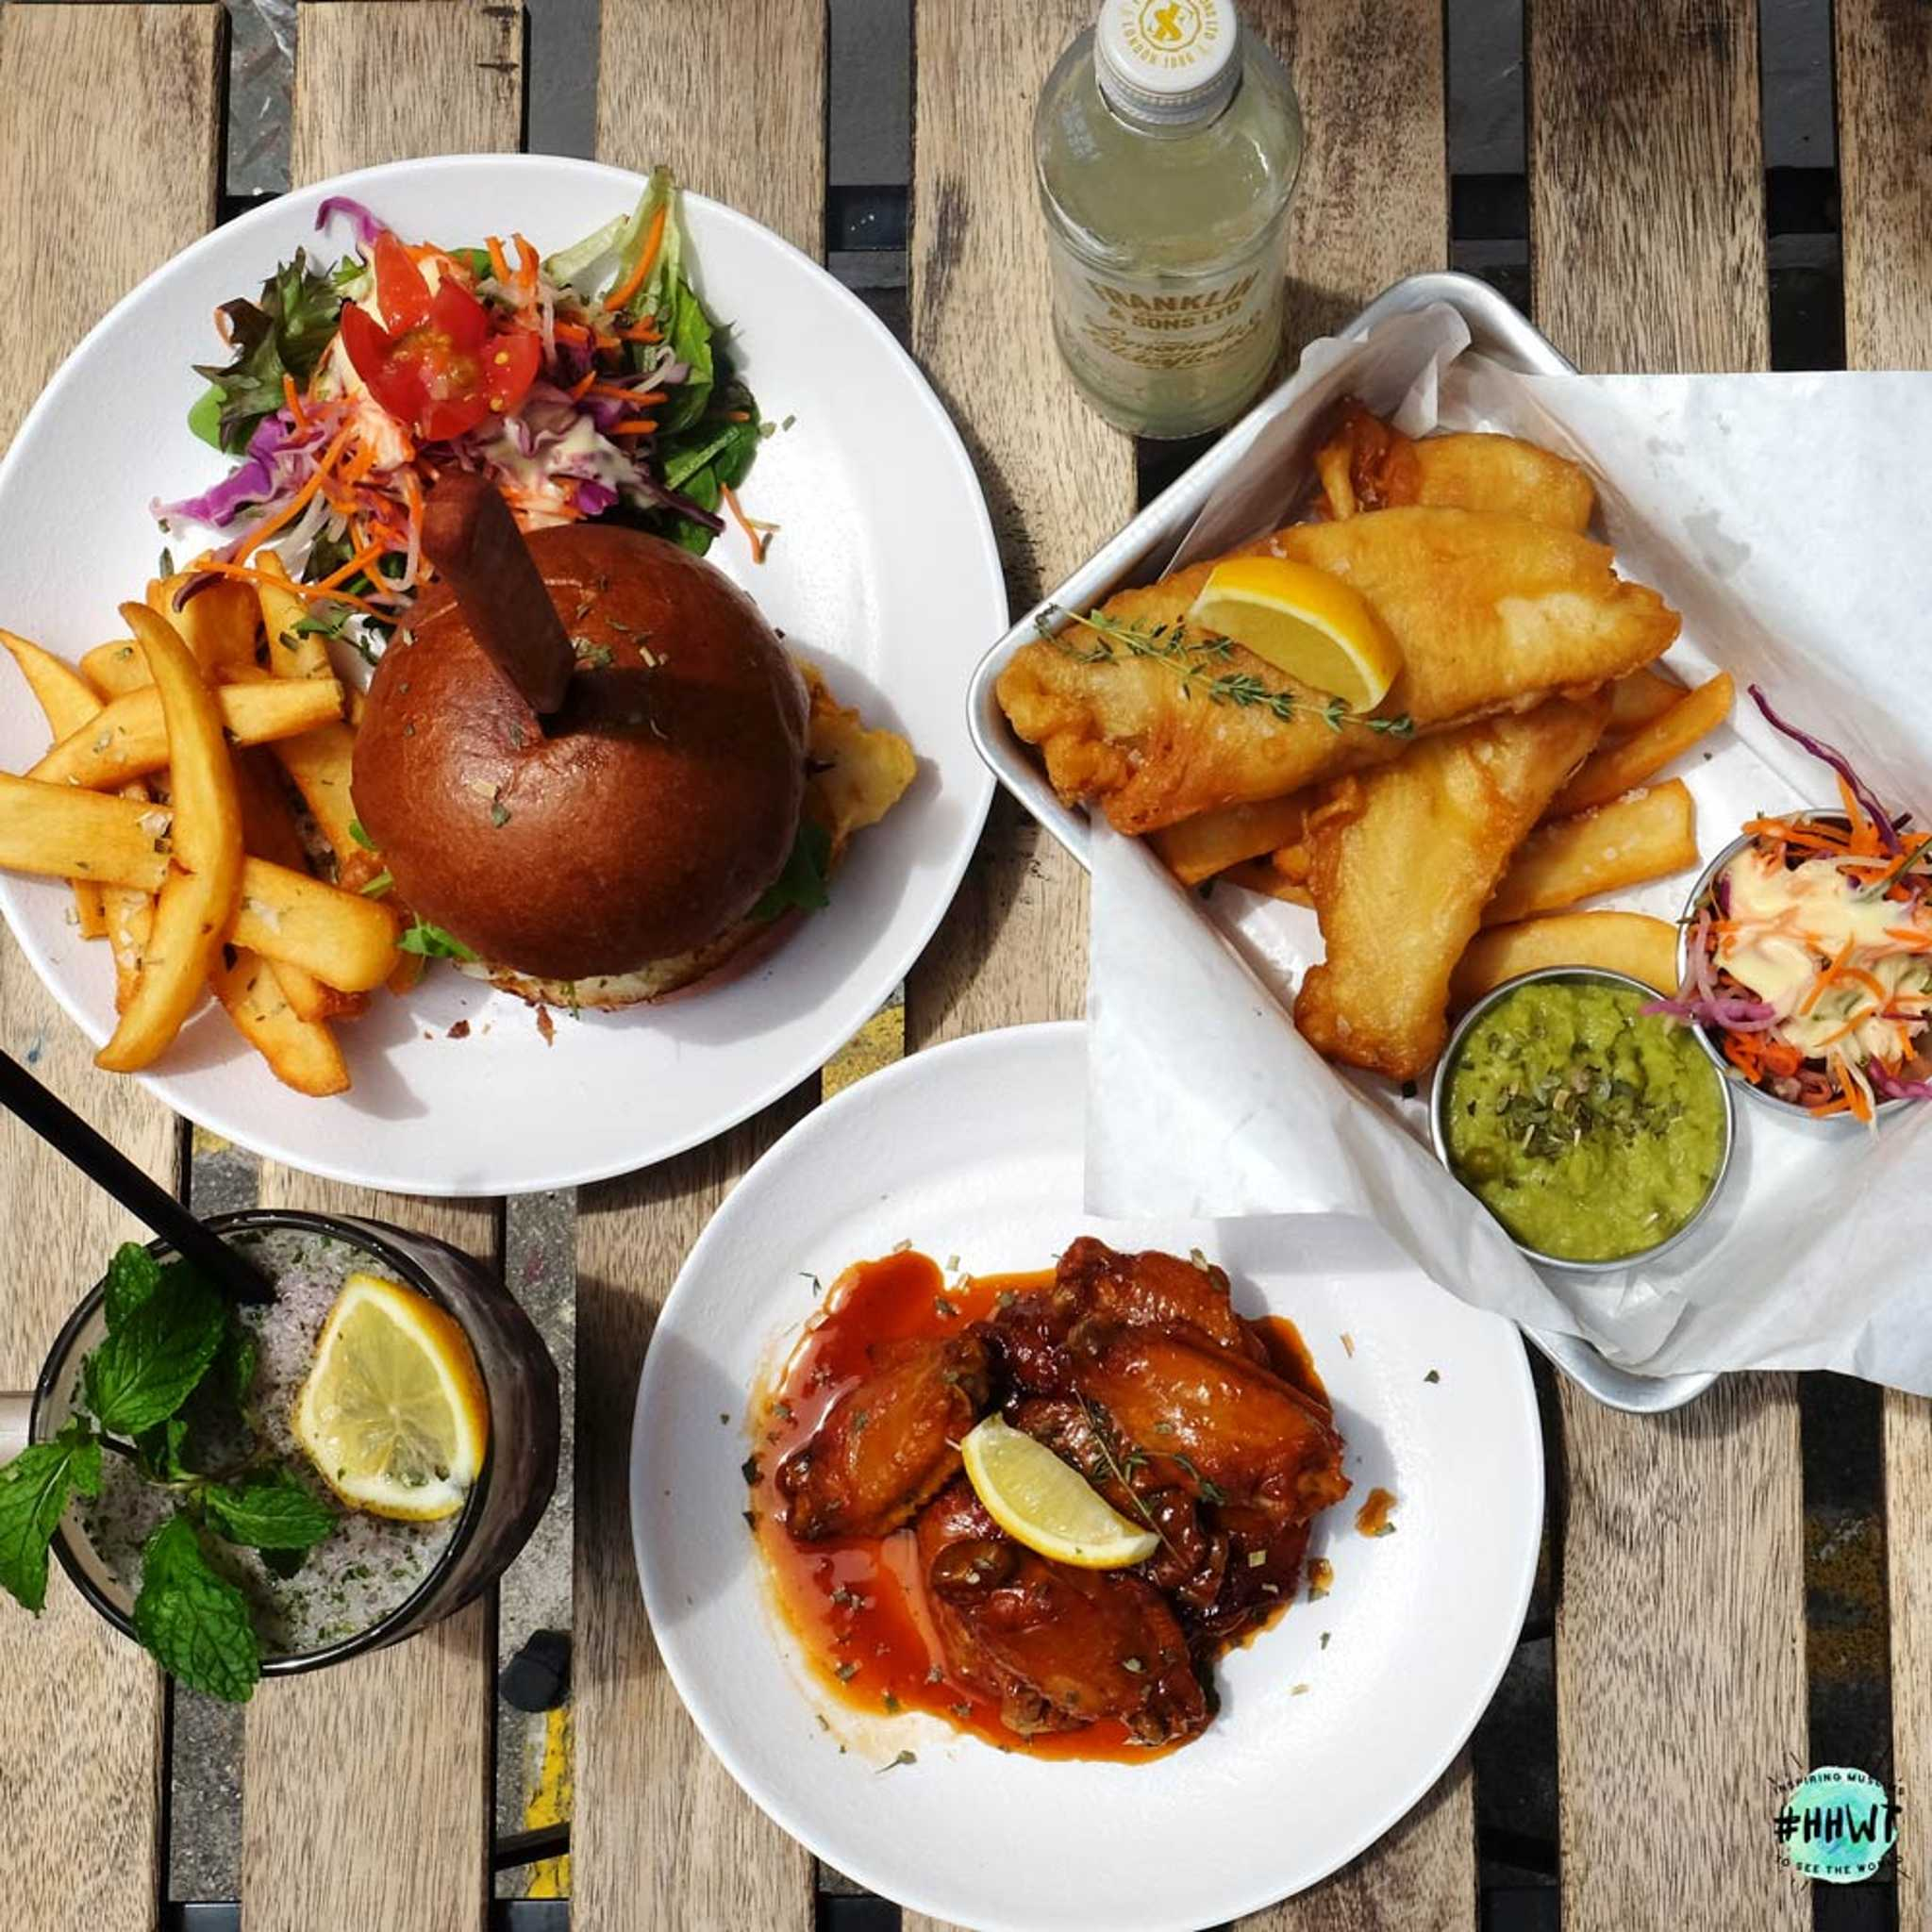 The-mad-sailor-halal-food-cafe-fish-and-chips